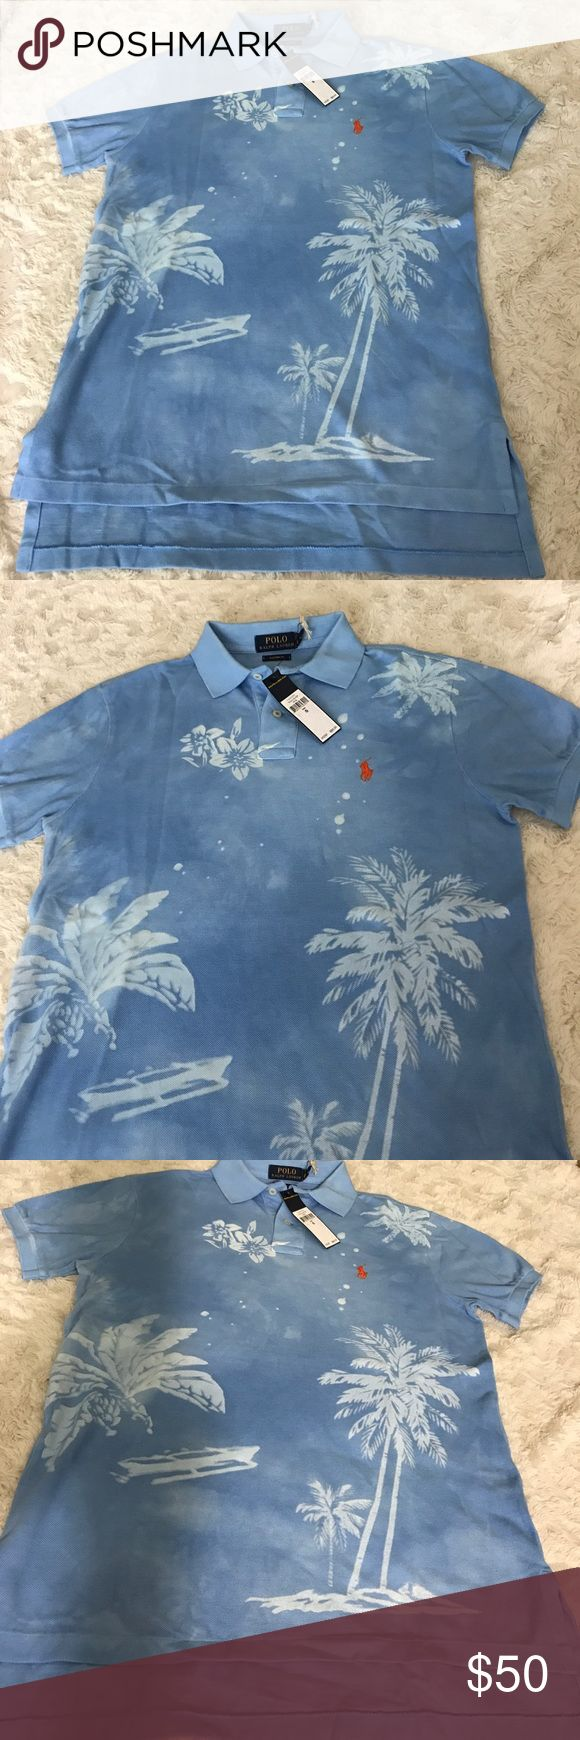 Polo Ralph Lauren Mesh Cotton Shirt $98 Sz Small Size Small New with tags  My prices are firm and fair 100% Mesh Cotton Blue and White Color Rare Shirt Pattern  I guarantee authentication of this shirt.  I can make you a bundle to save money on shipping cost .So please check my other items.  Code : GRE Polo by Ralph Lauren Shirts Polos